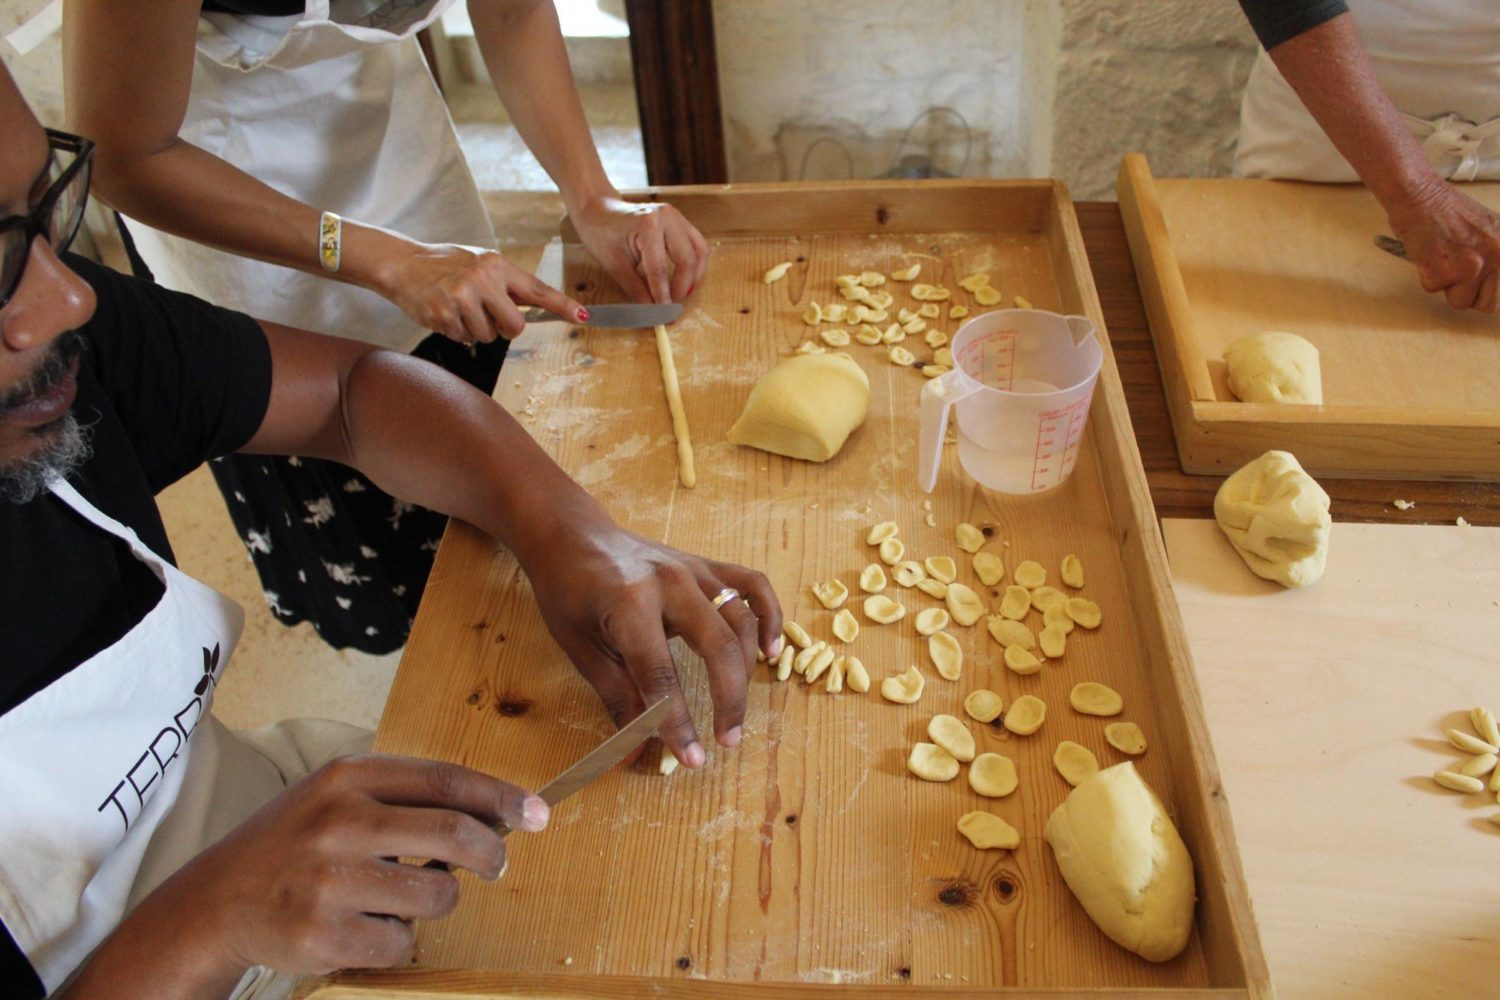 Tasting with Apulian dishes